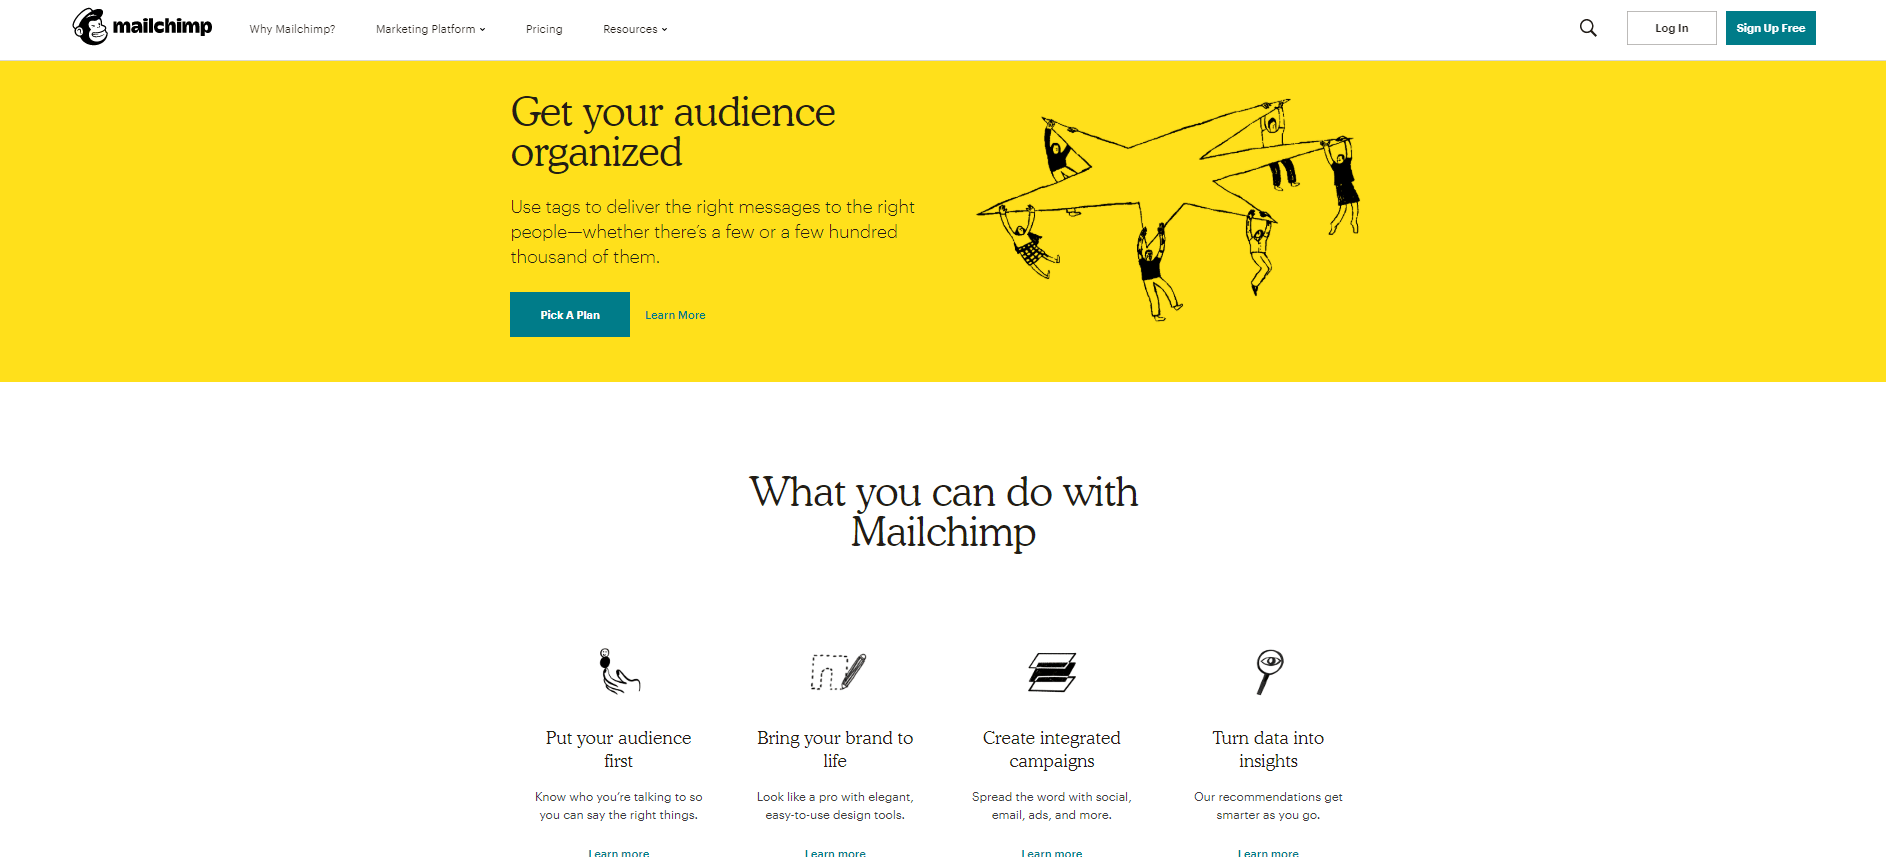 Screenshot of Mailchimp's website-a Content Marketing automation tool for Email marketing.